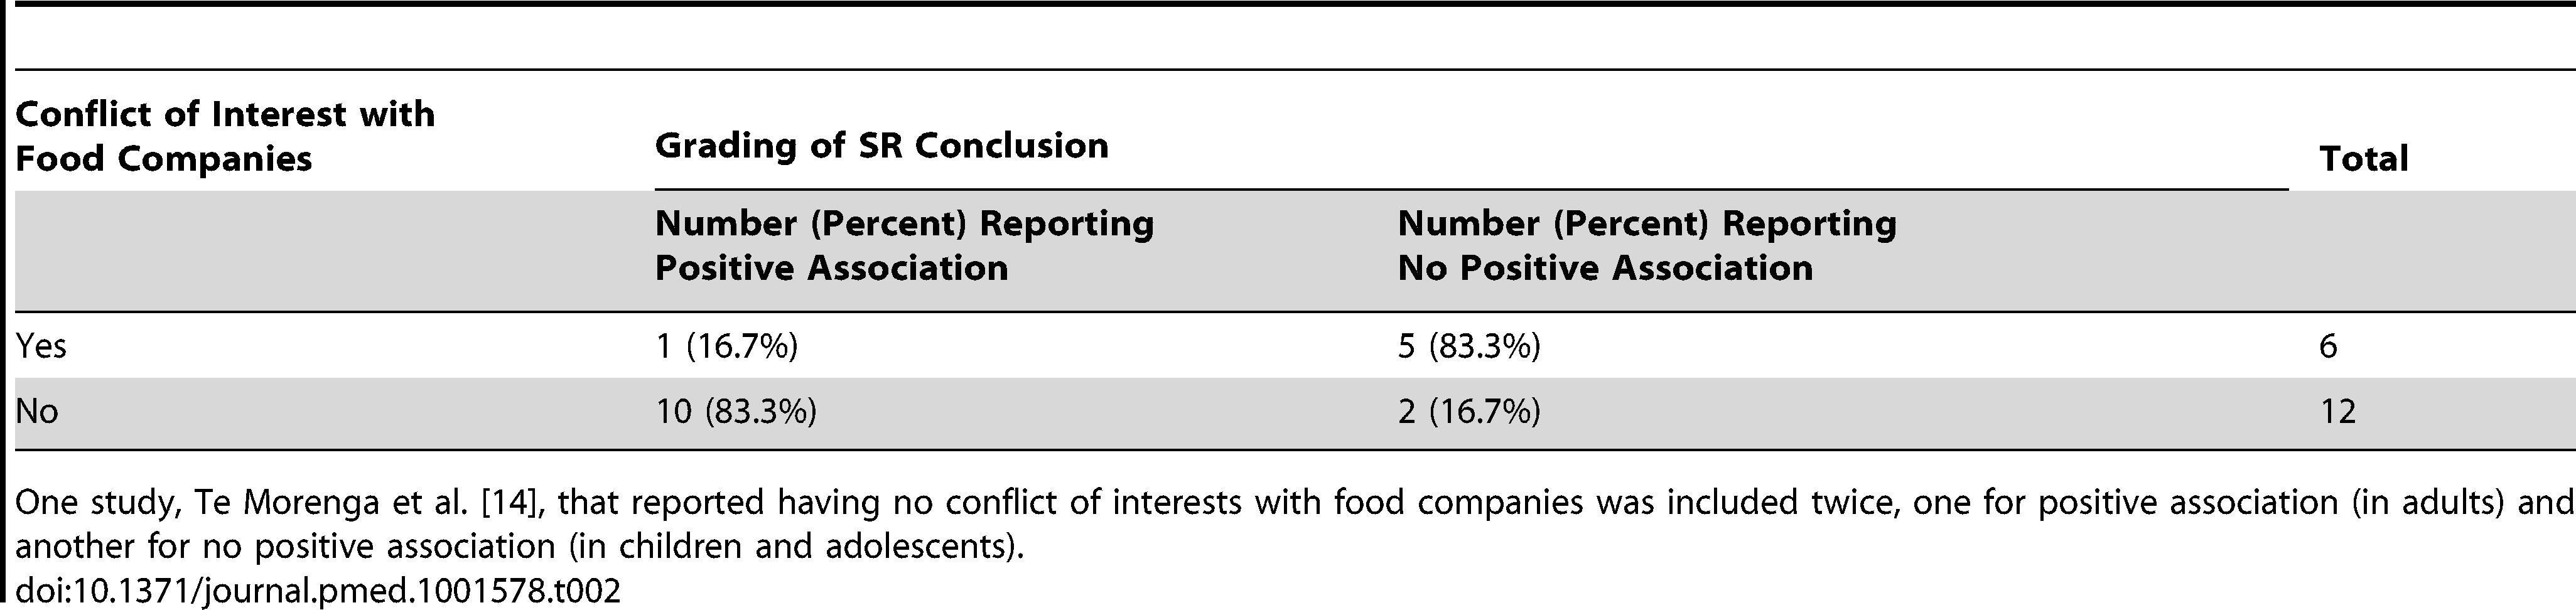 Relationship between conflicts of interest with food companies and conclusions on sugar-sweetened beverage consumption and weight gain in the systematic reviews conducted up to August 31, 2013.